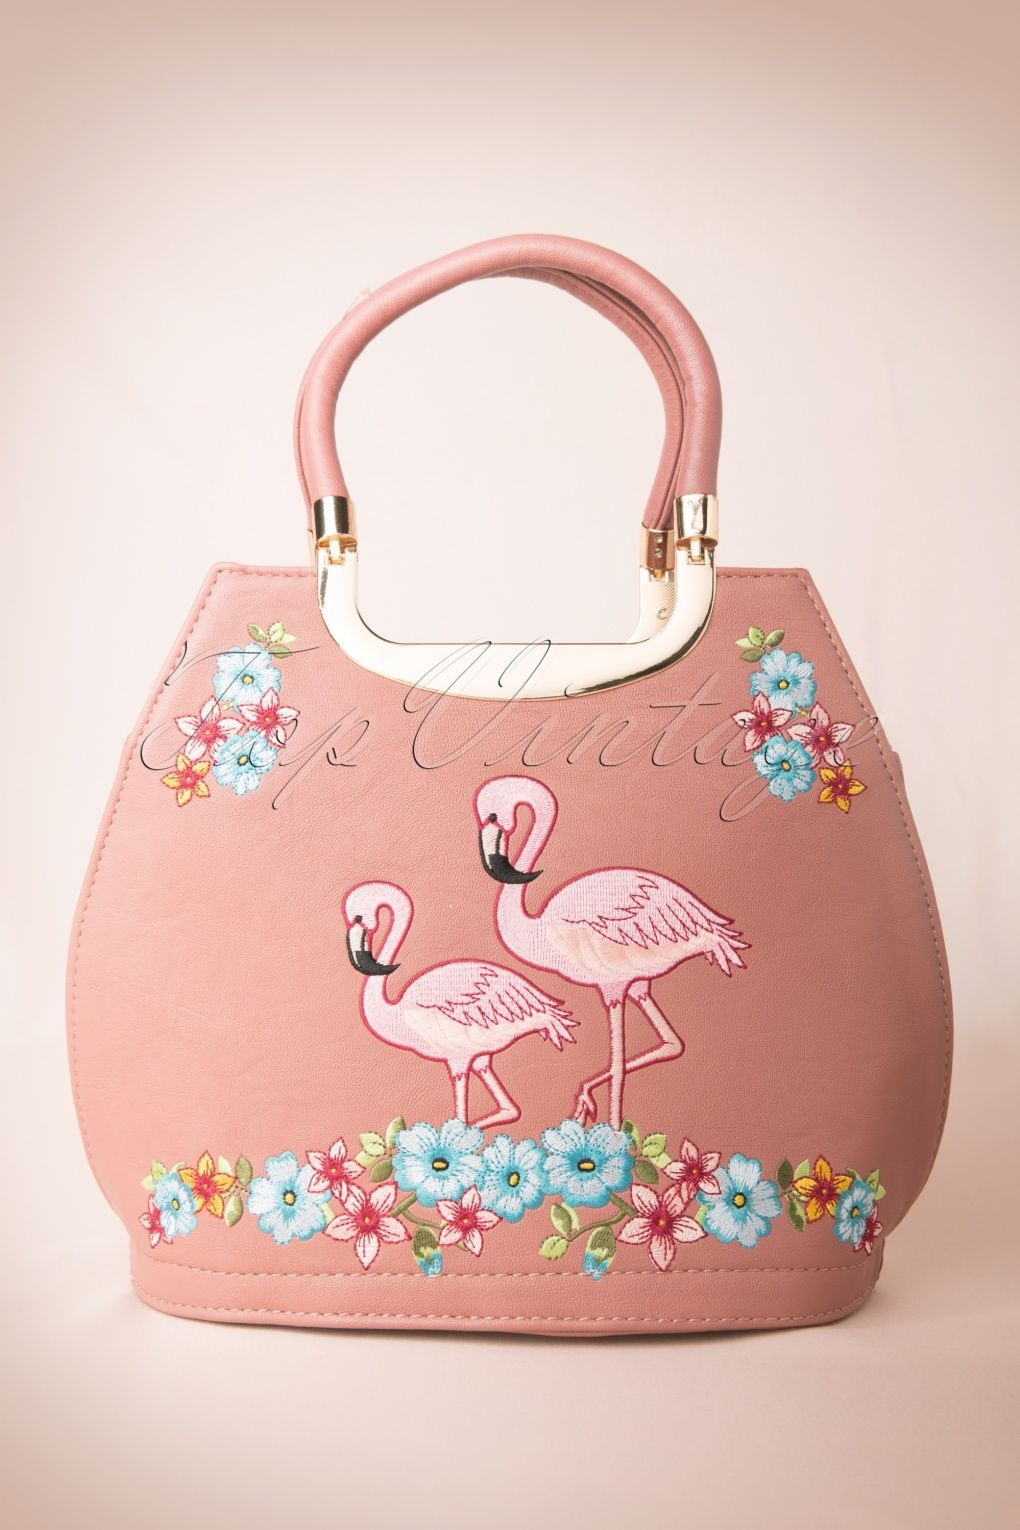 0131e32ab0f99 Vintage 50s Pink Flamingo Handbag. Holy crap! I don t normally do pink but  it s flamingos and I need it!!!